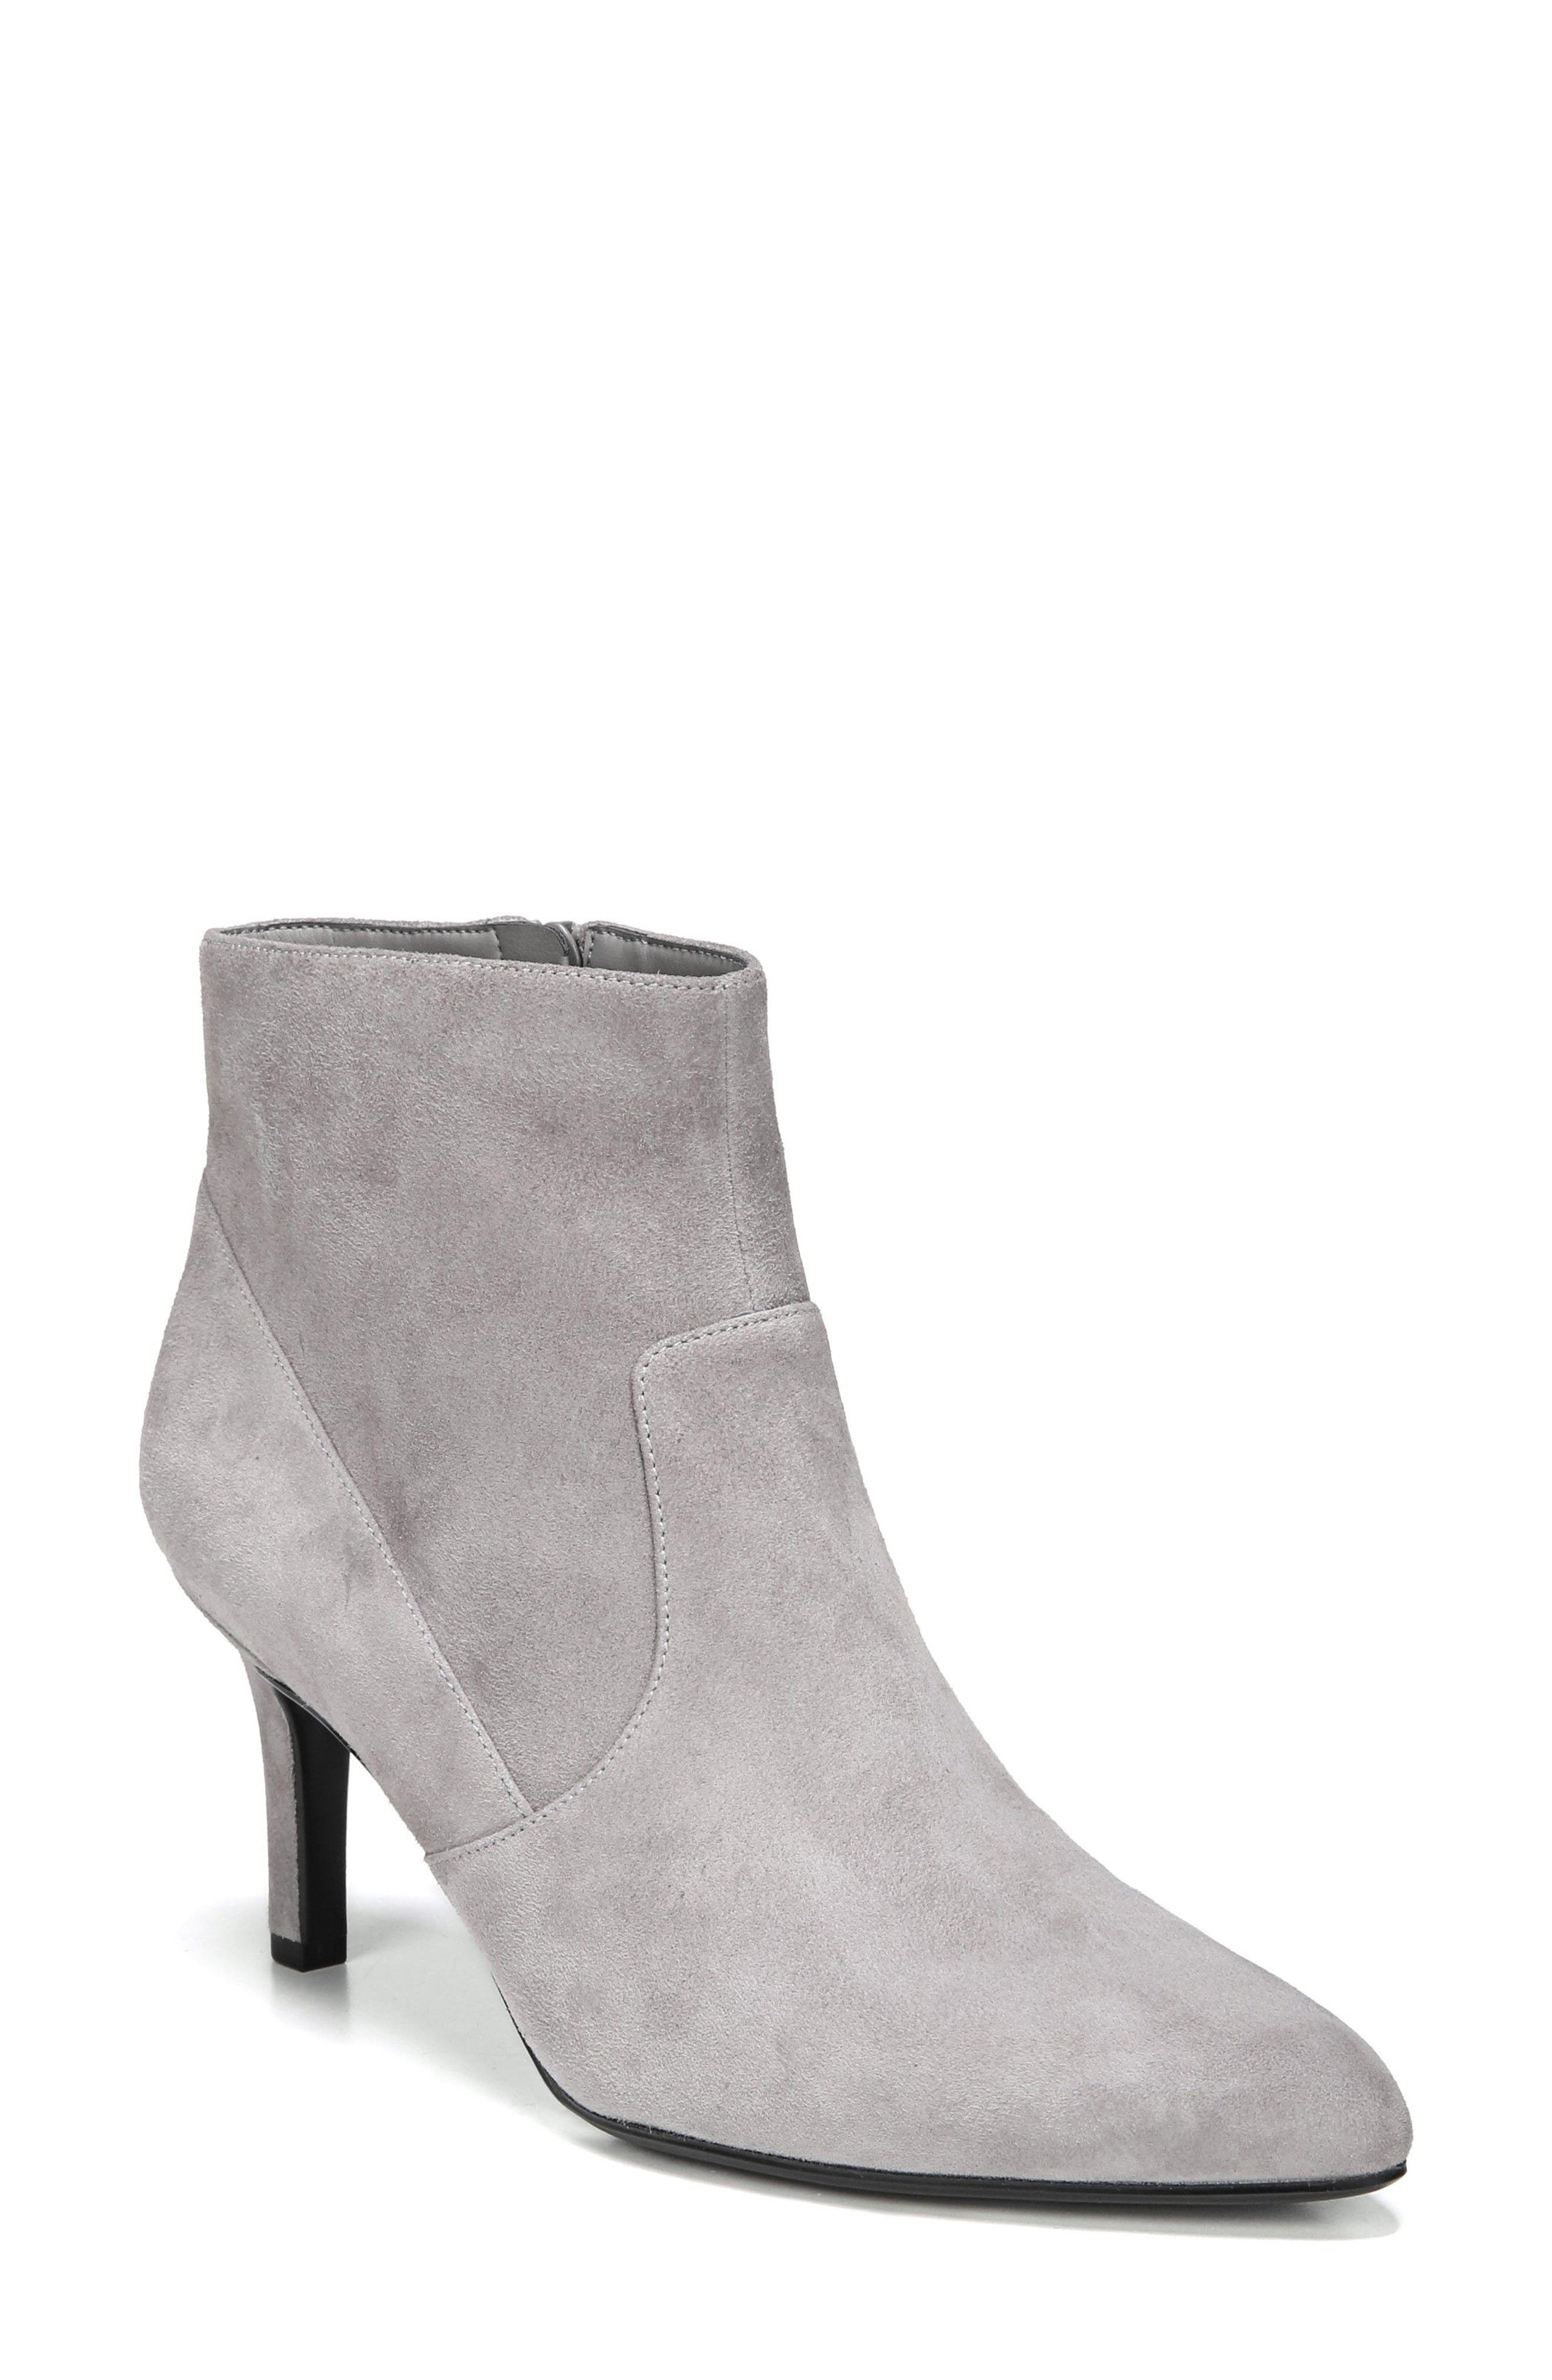 Main Image - Naturalizer Nadine Bootie (Women)